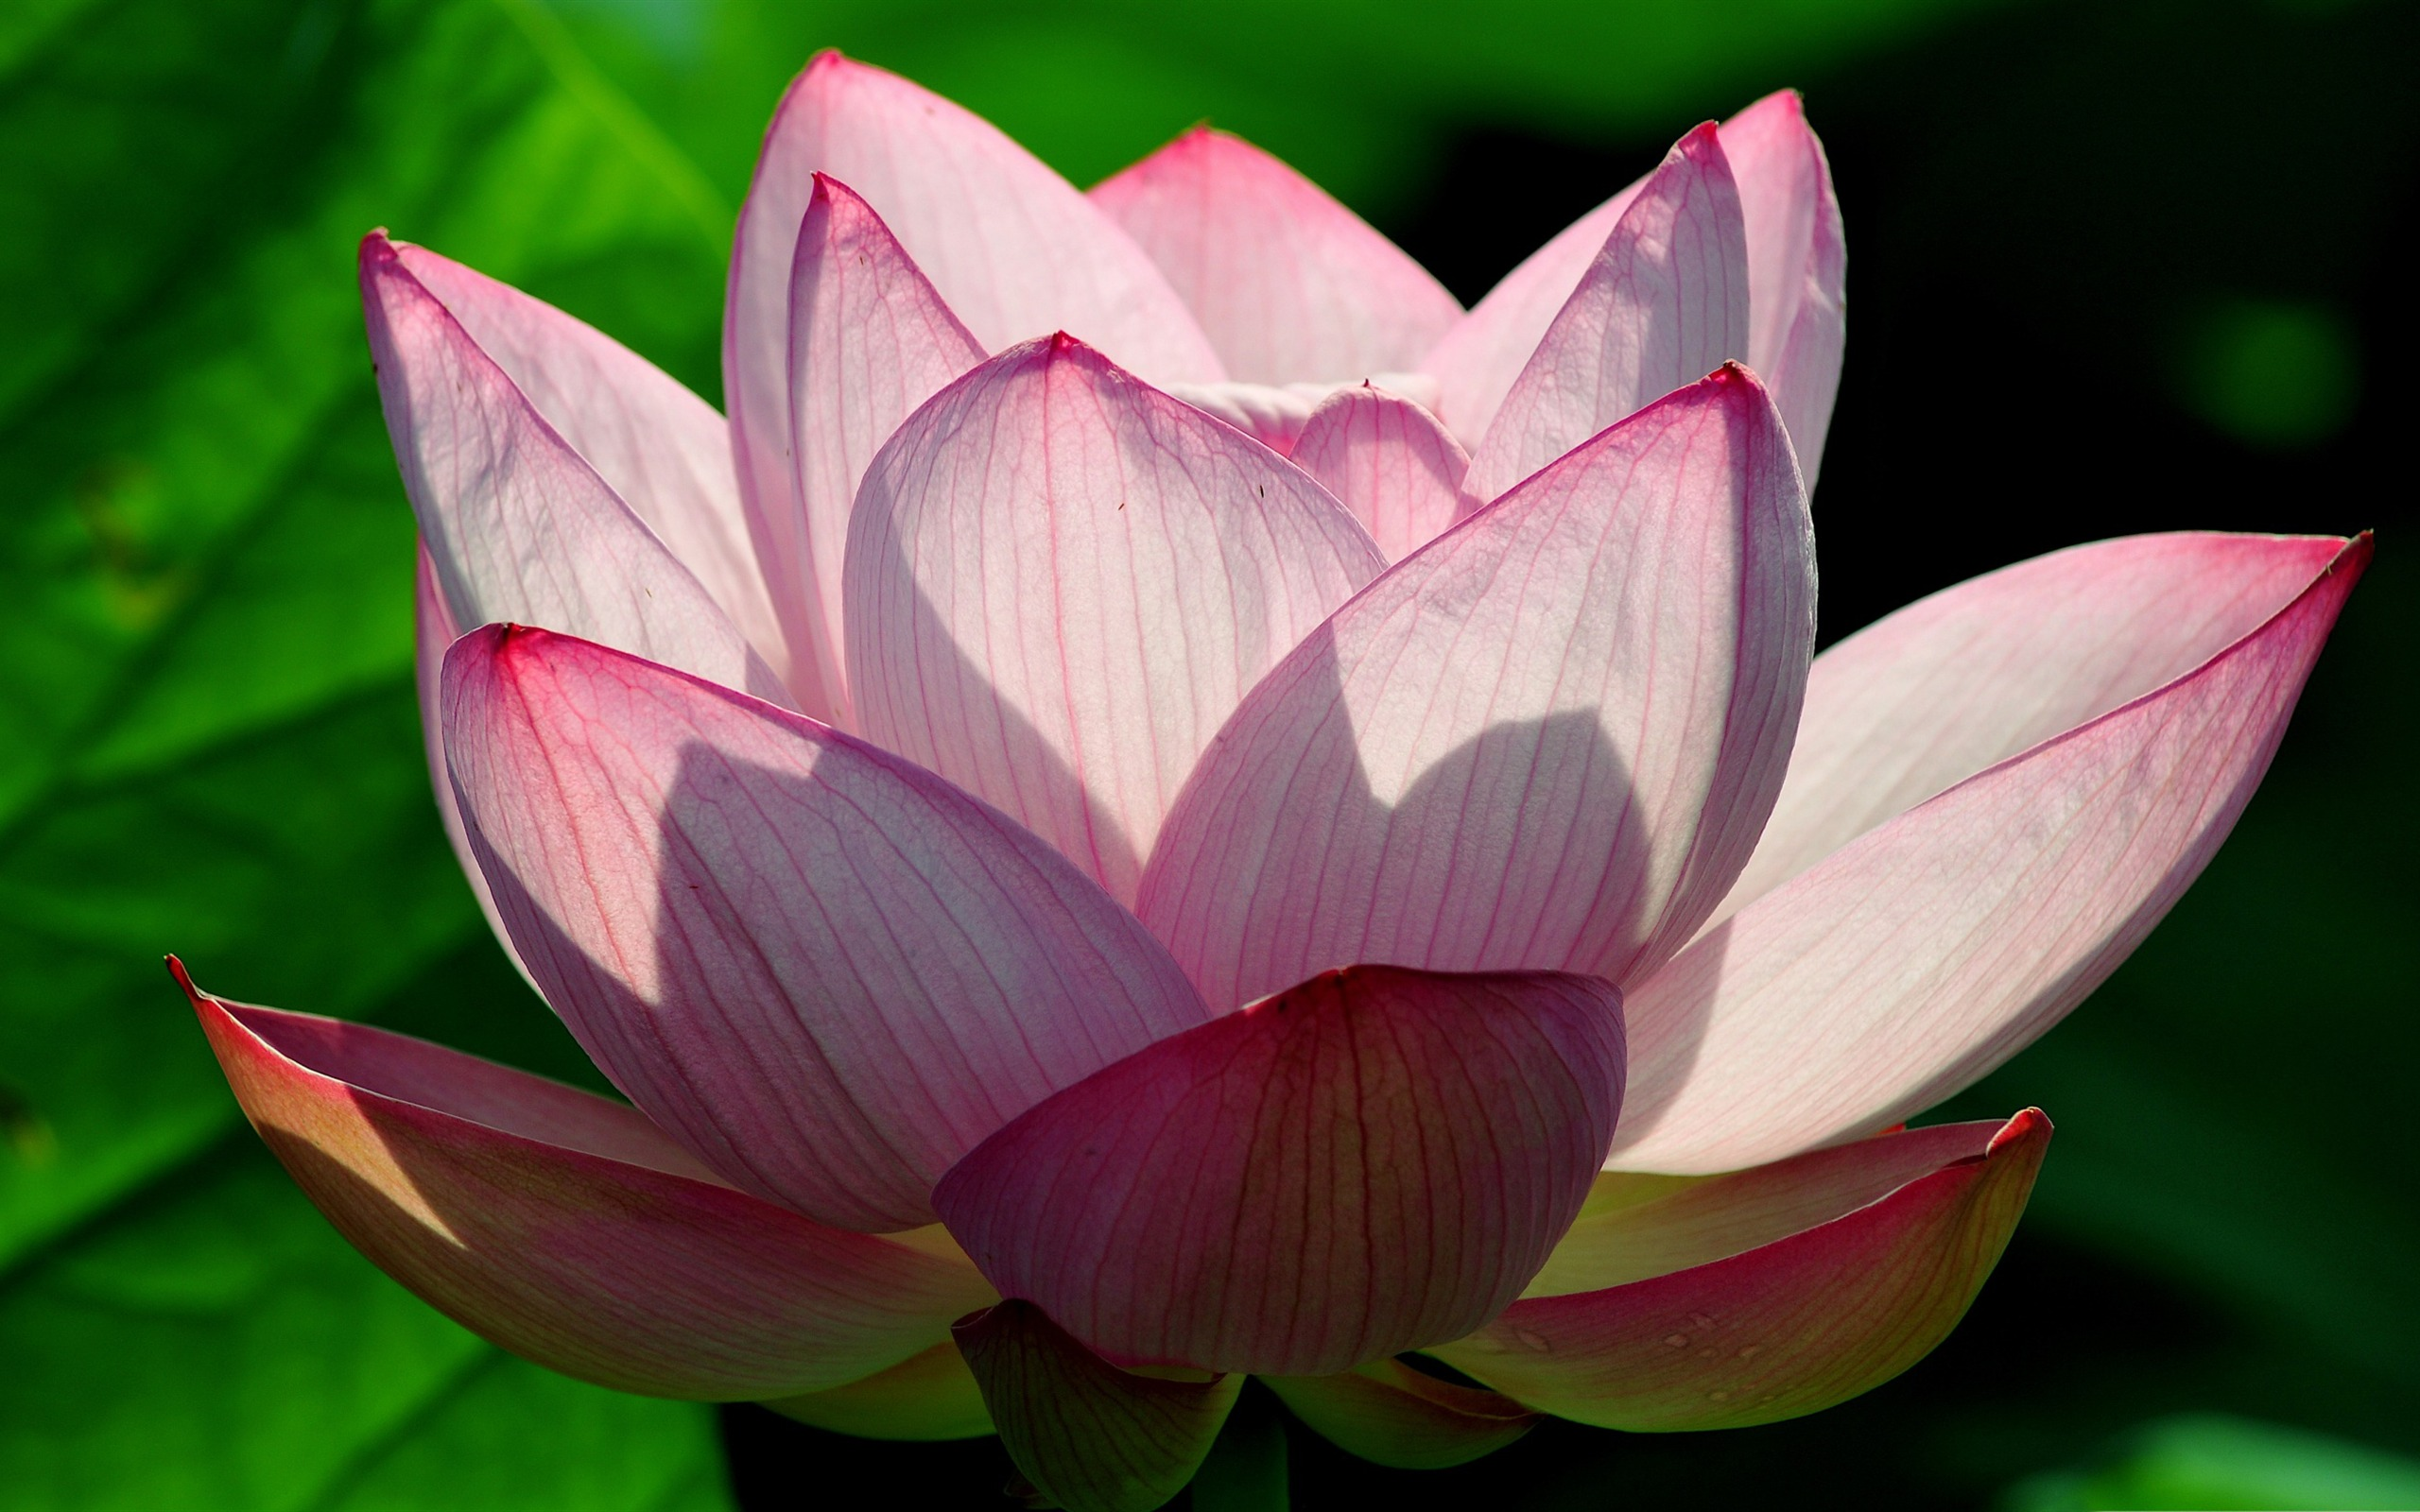 Pink Lotus Flower Photo Hd Wallpapers Preview 10wallpapercom